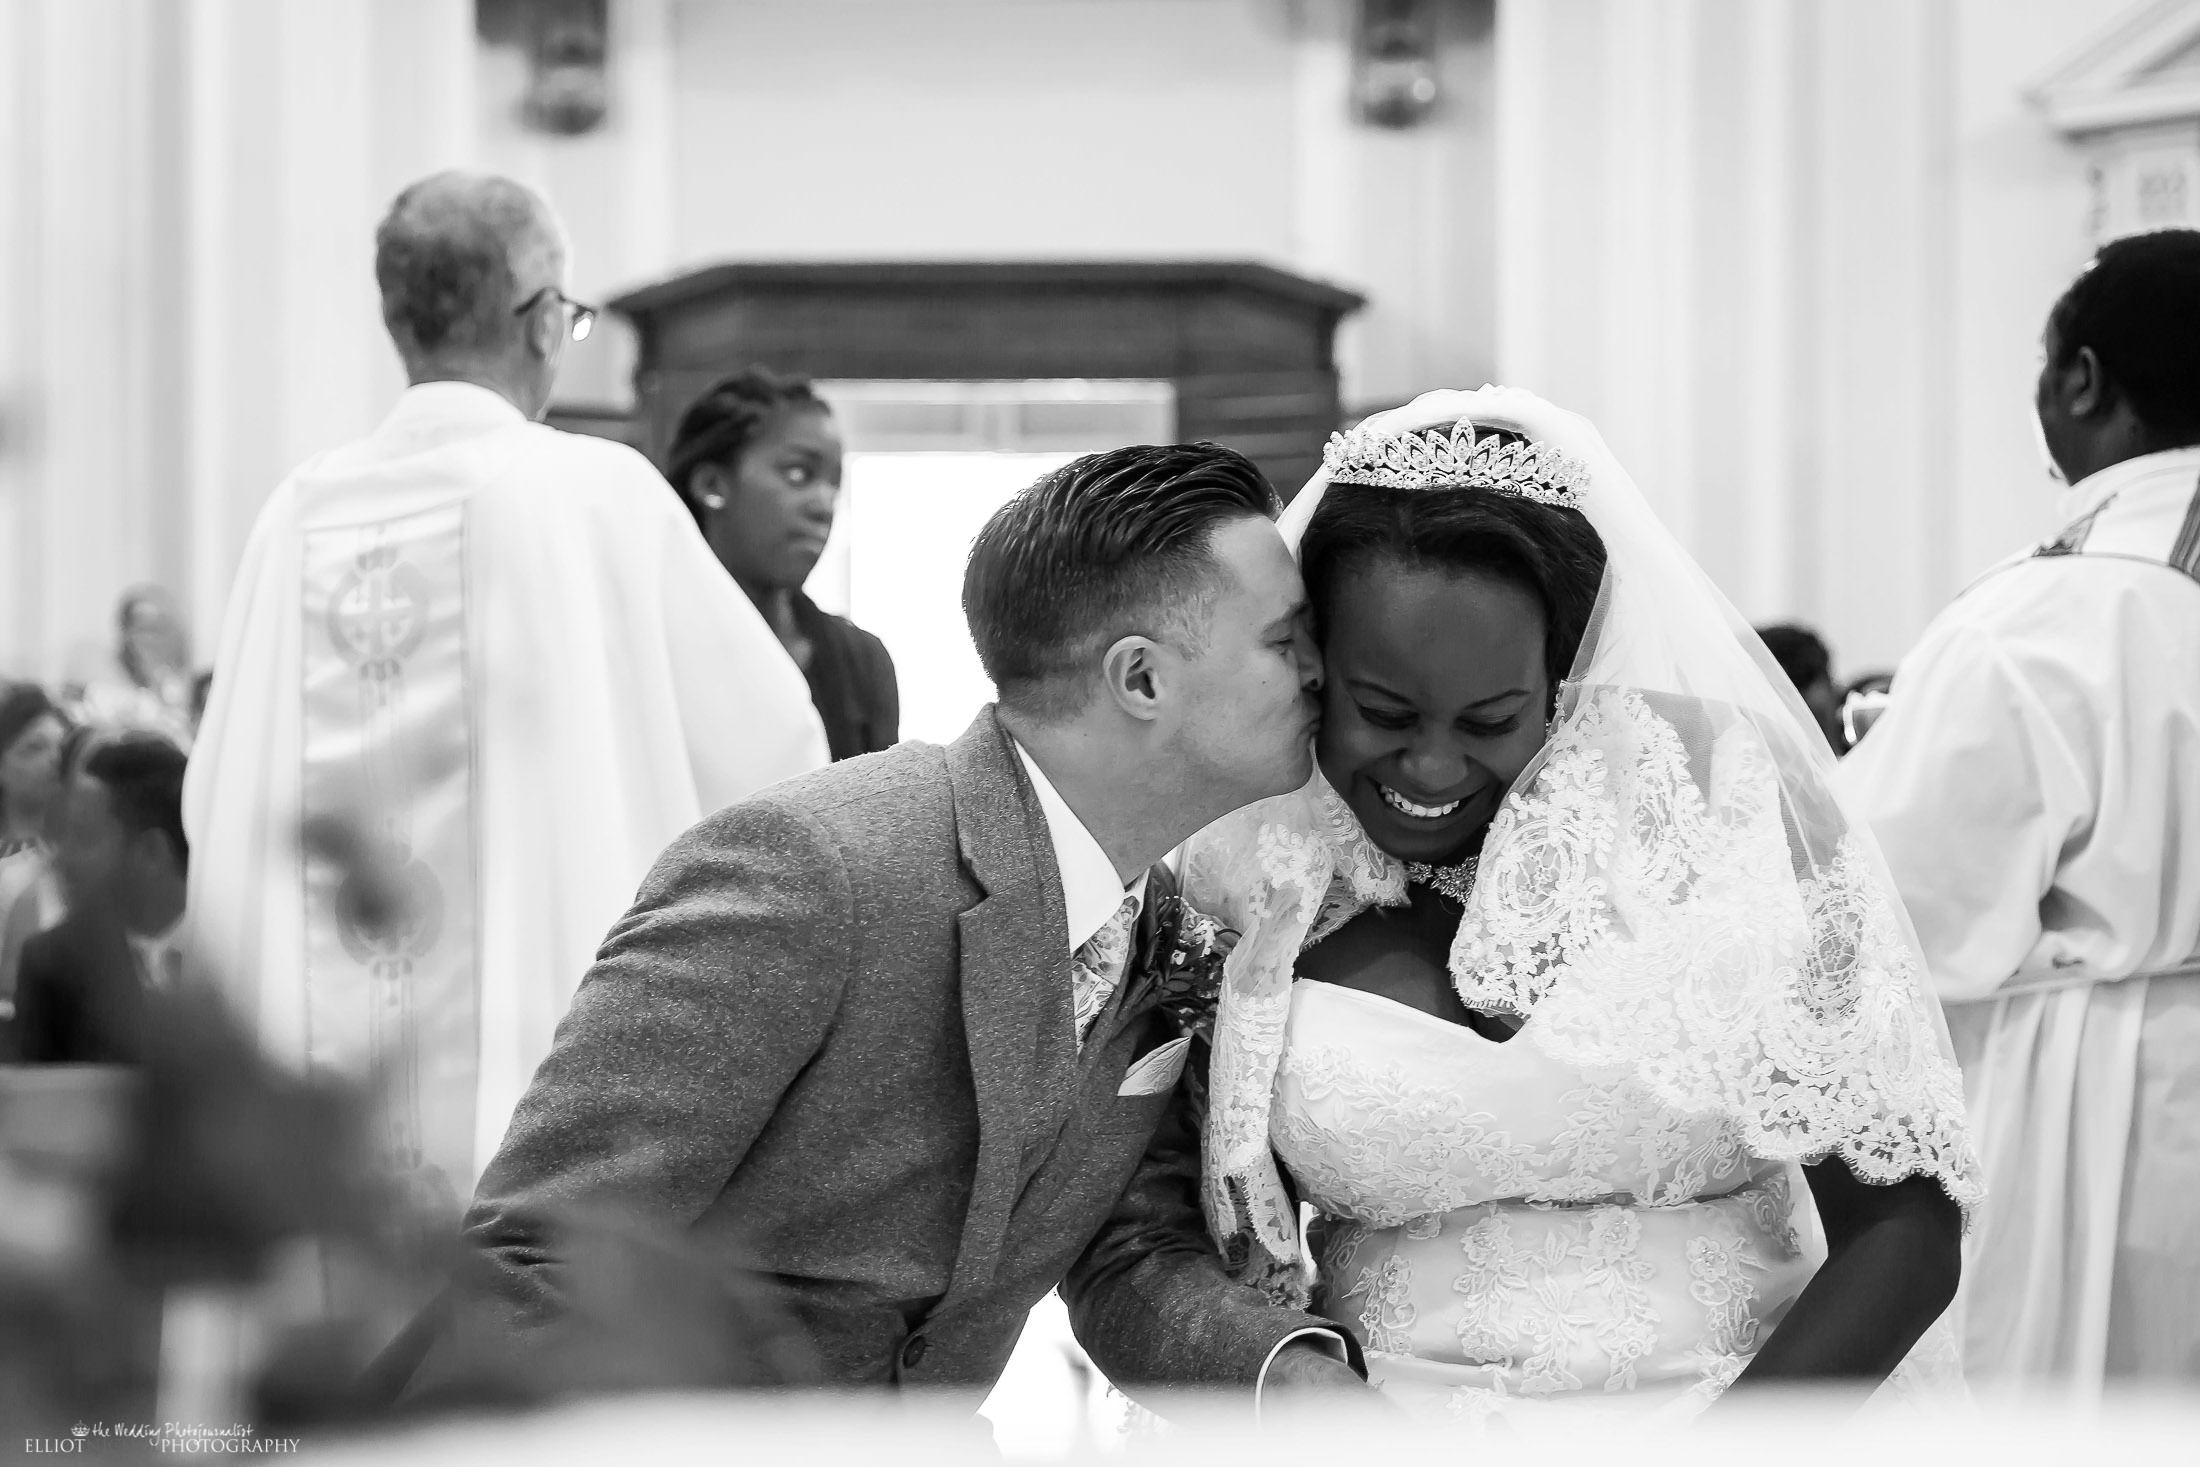 Groom steals a kiss during the church wedding ceremony. Photo by Elliot Nichol Photography.